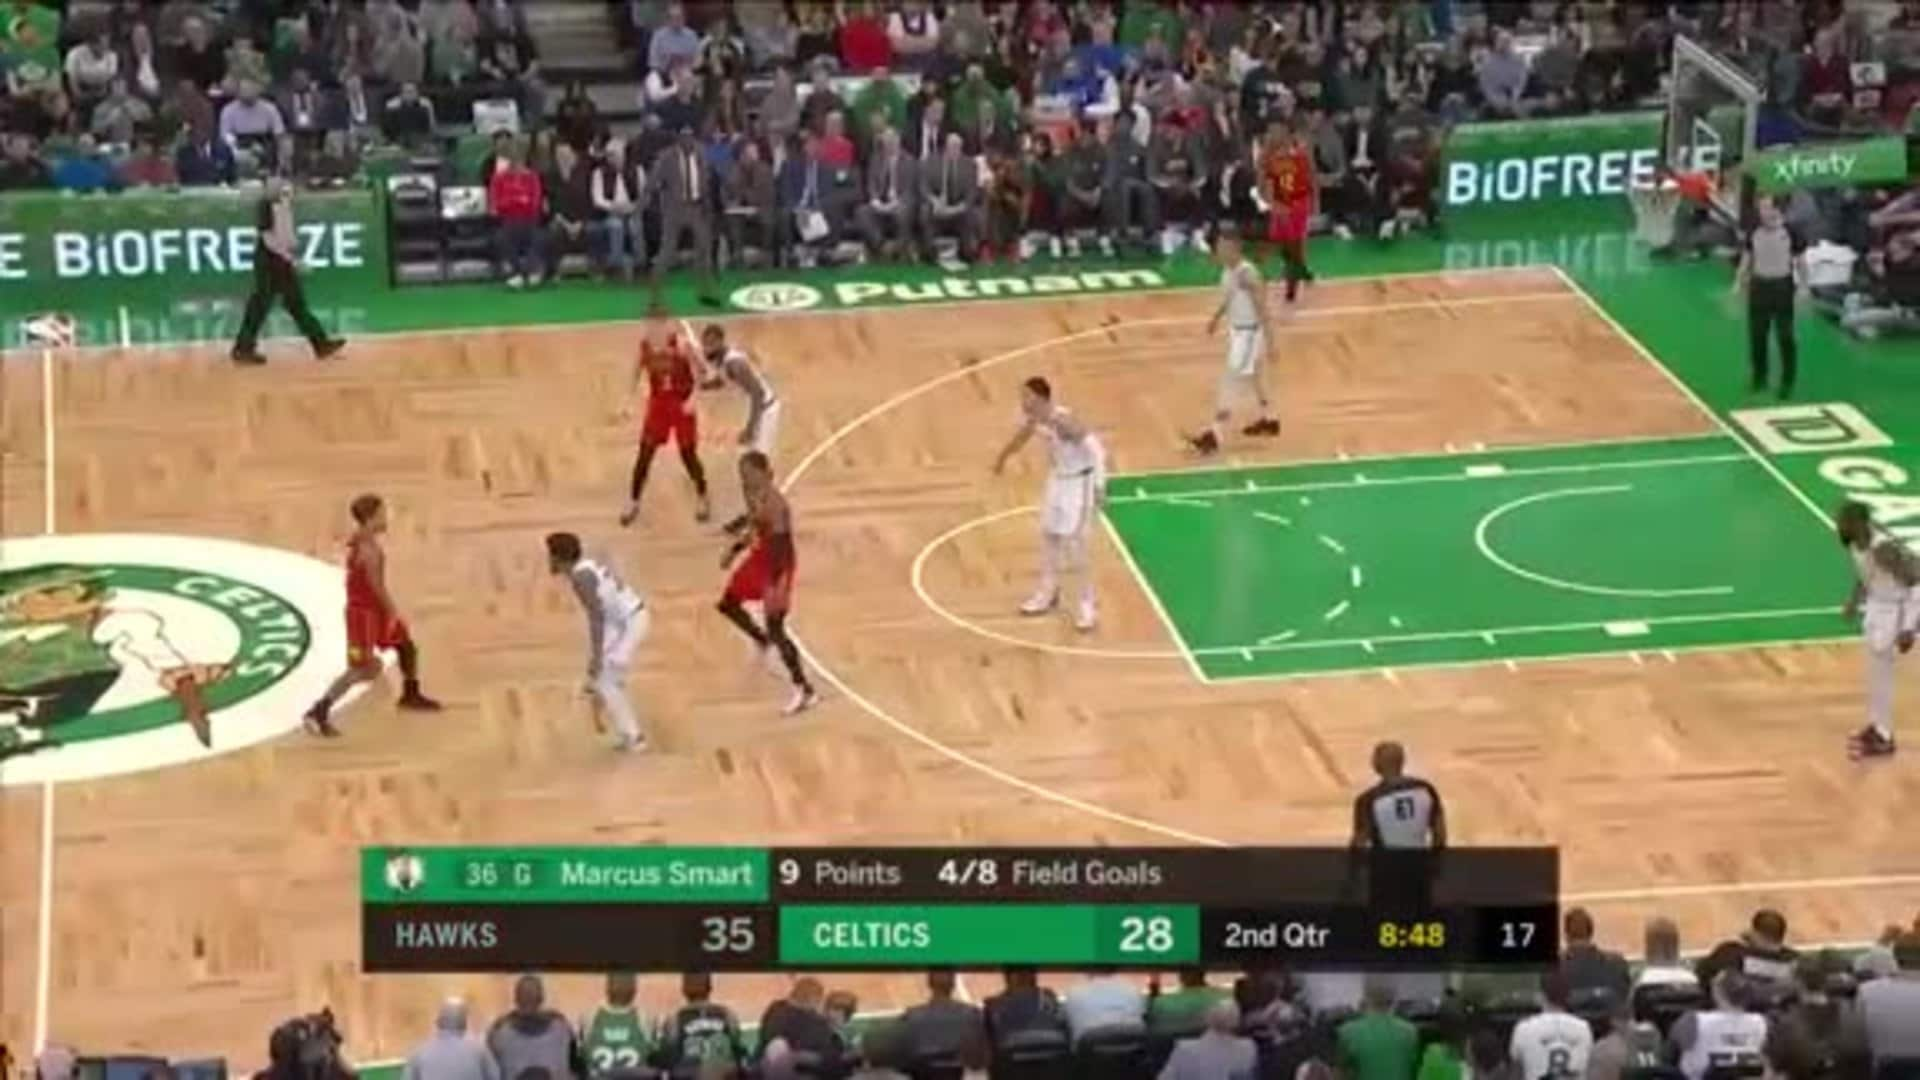 Young Notches Double-Double In Close Contest vs. Celtics